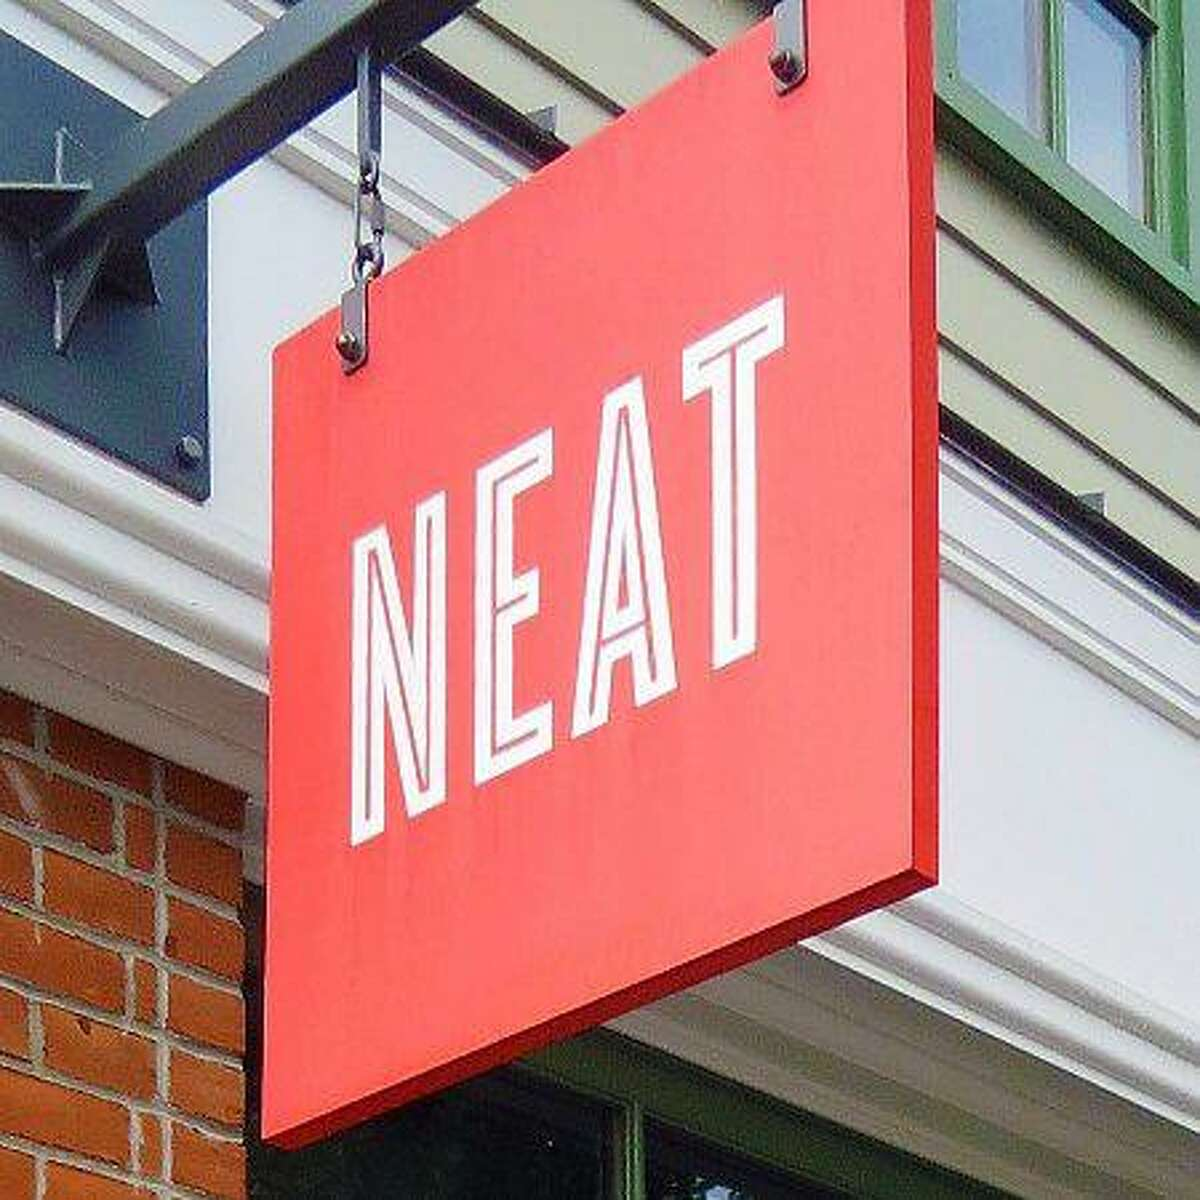 A GoFundMe has been established for employees of NEAT and the Sugar Bowl, both closed during the coronavirus pandemic.